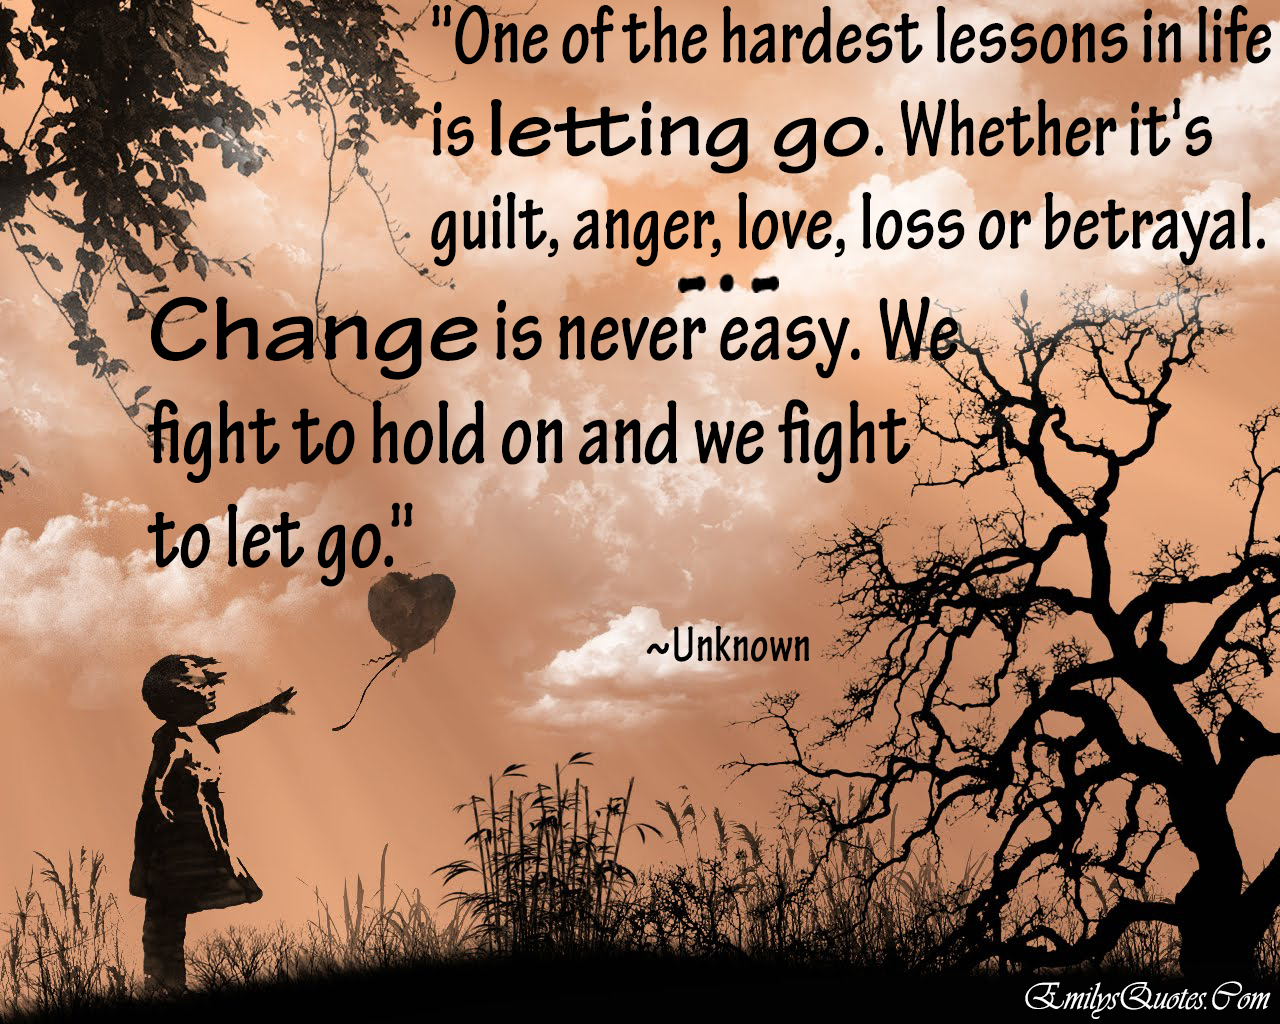 Quotes About Loss Of Friendship One Of The Hardest Lessons In Life Is Letting Gowhether It's